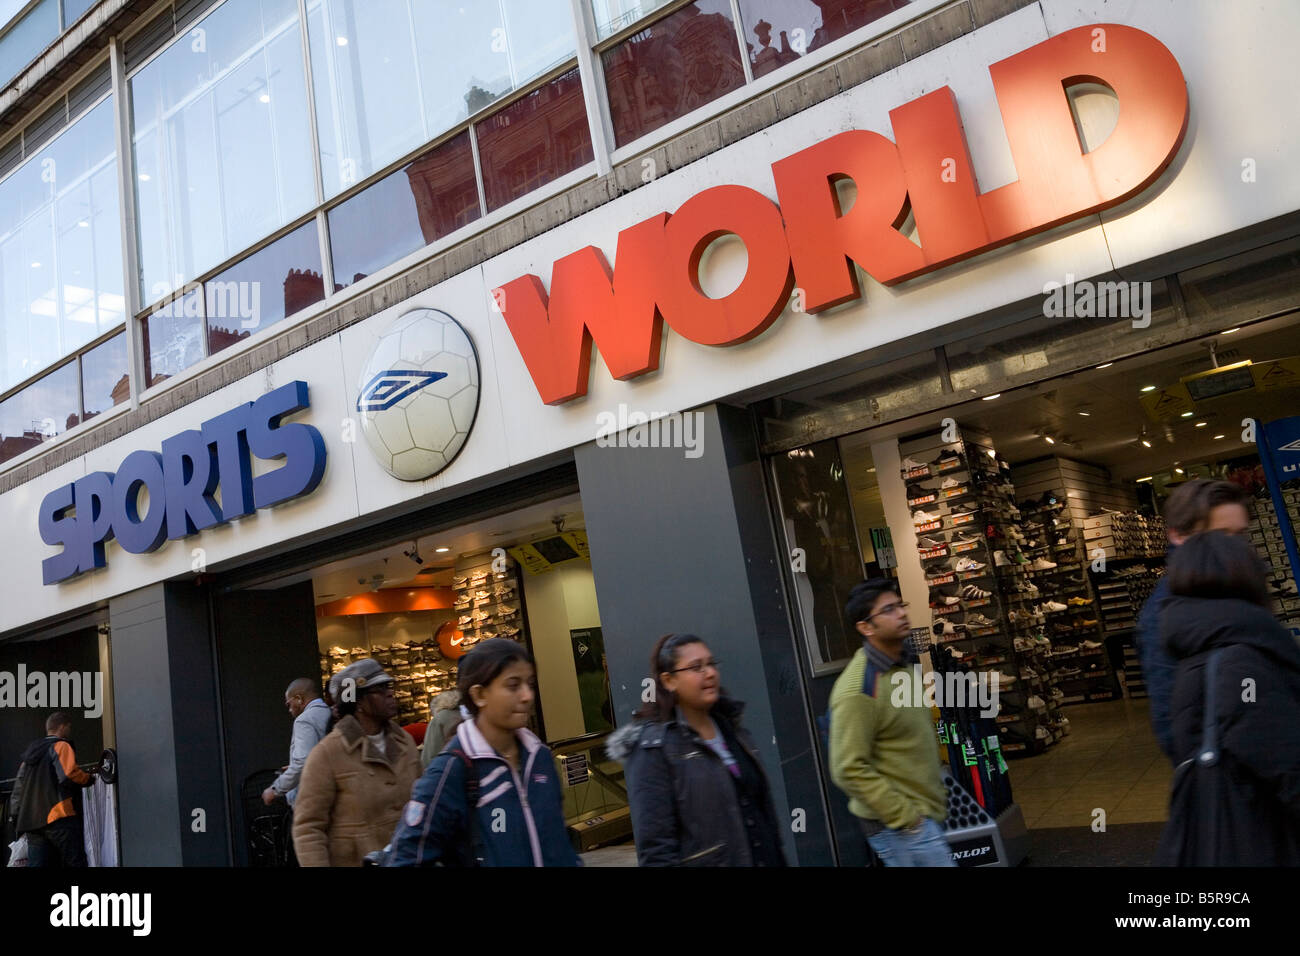 Sports World shop owned by Mike Ashley company Sports Direct International - Stock Image